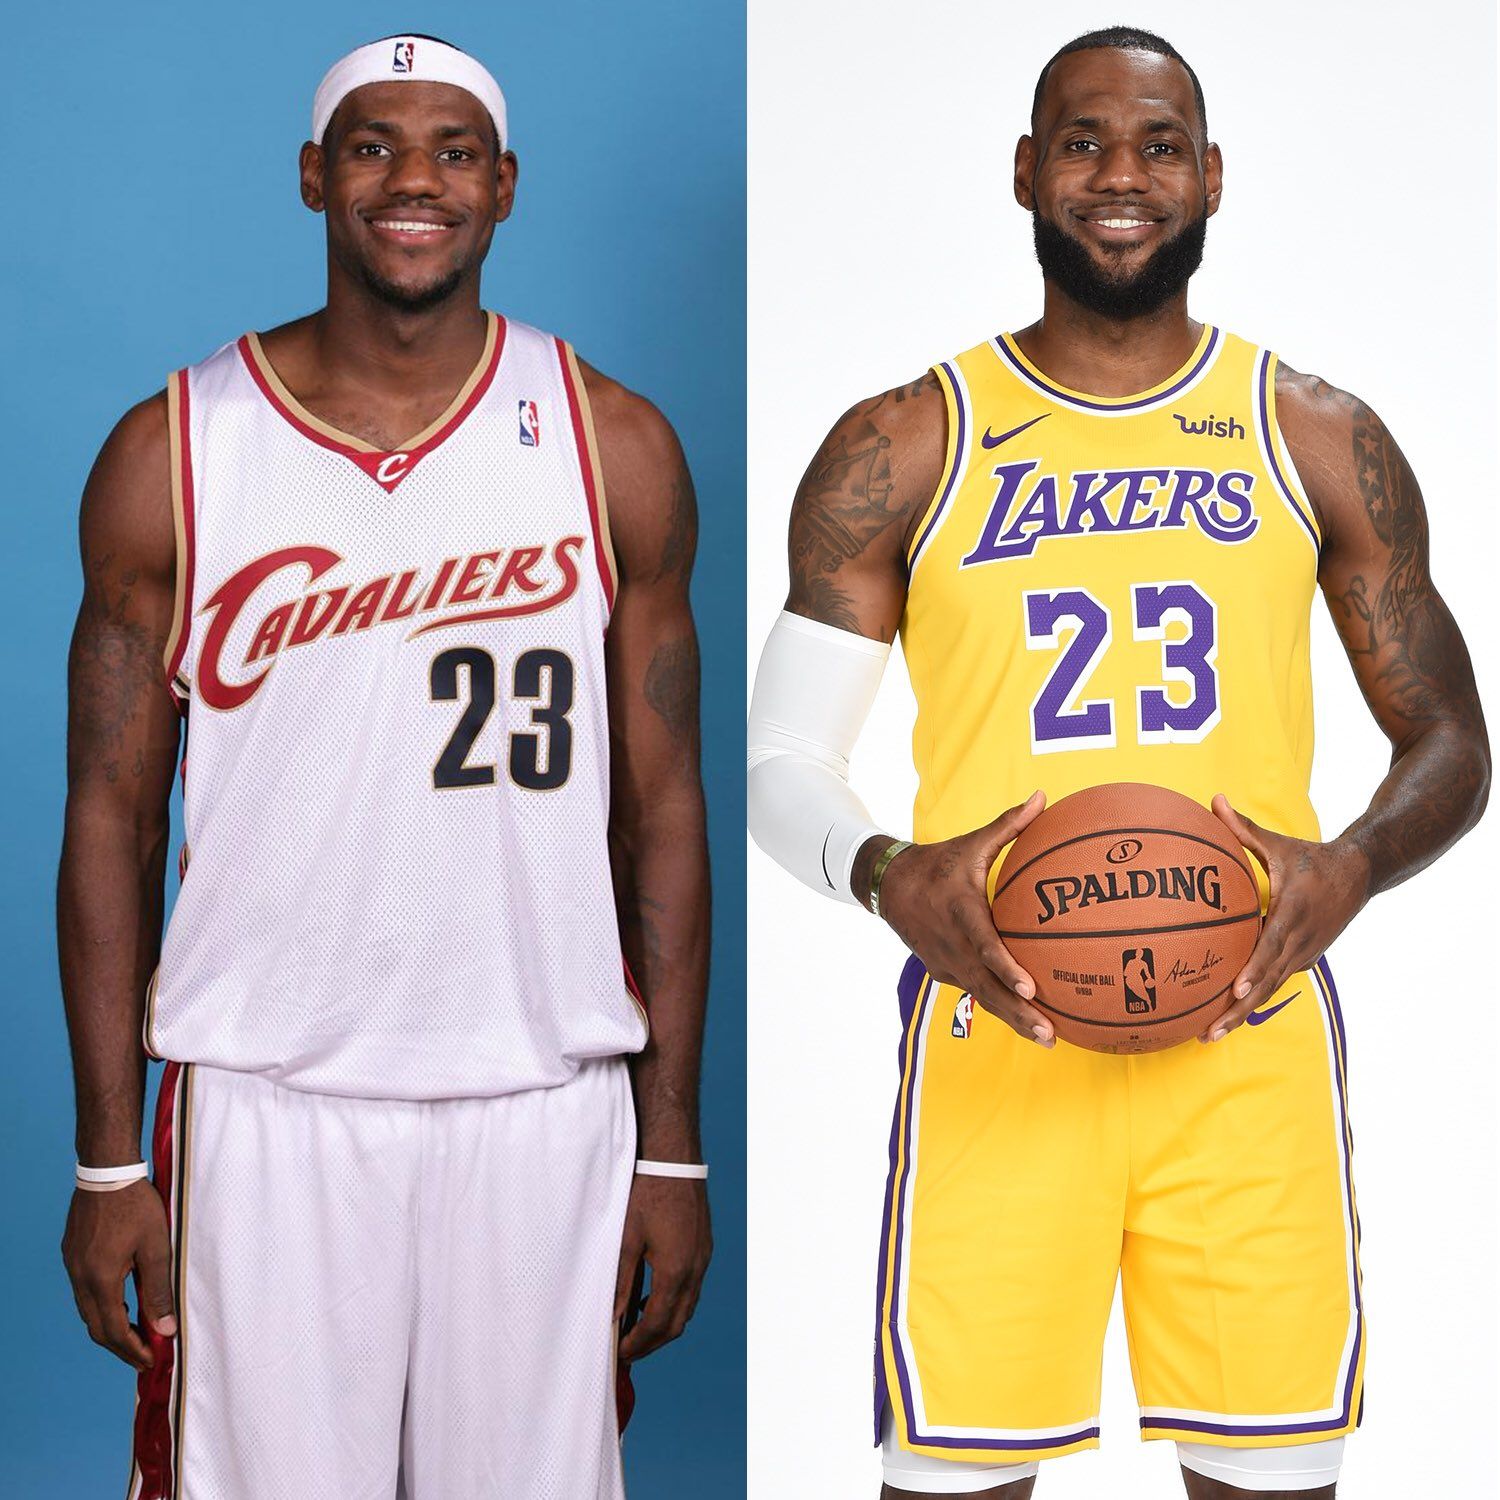 Then and Now: NBA edition https://t.co/VOaH7DzXSW